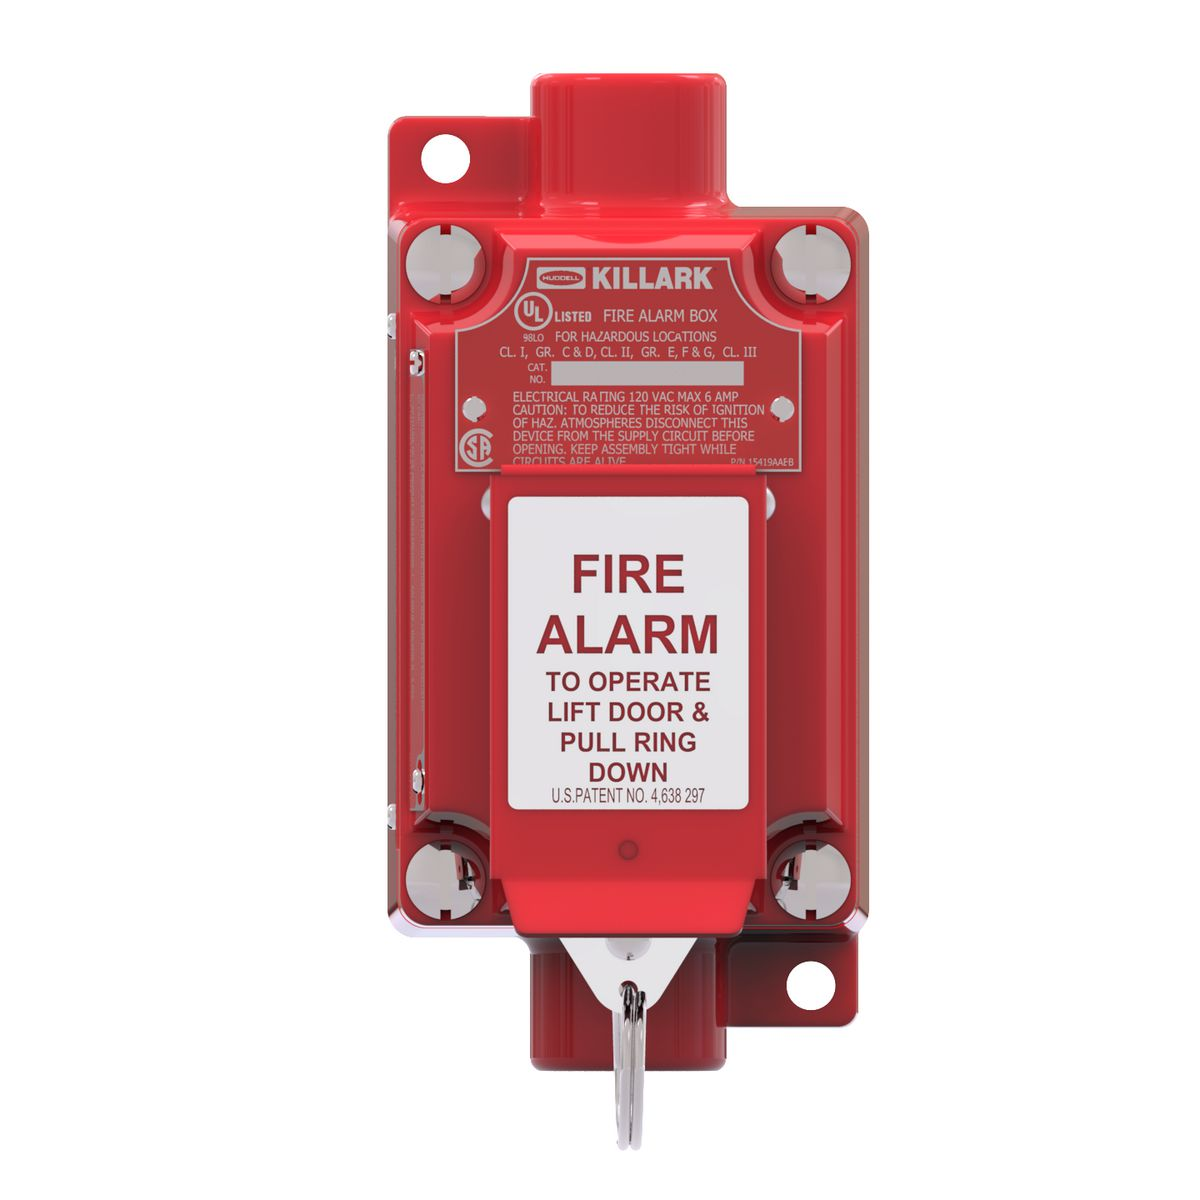 fireworks fire alarm software manual